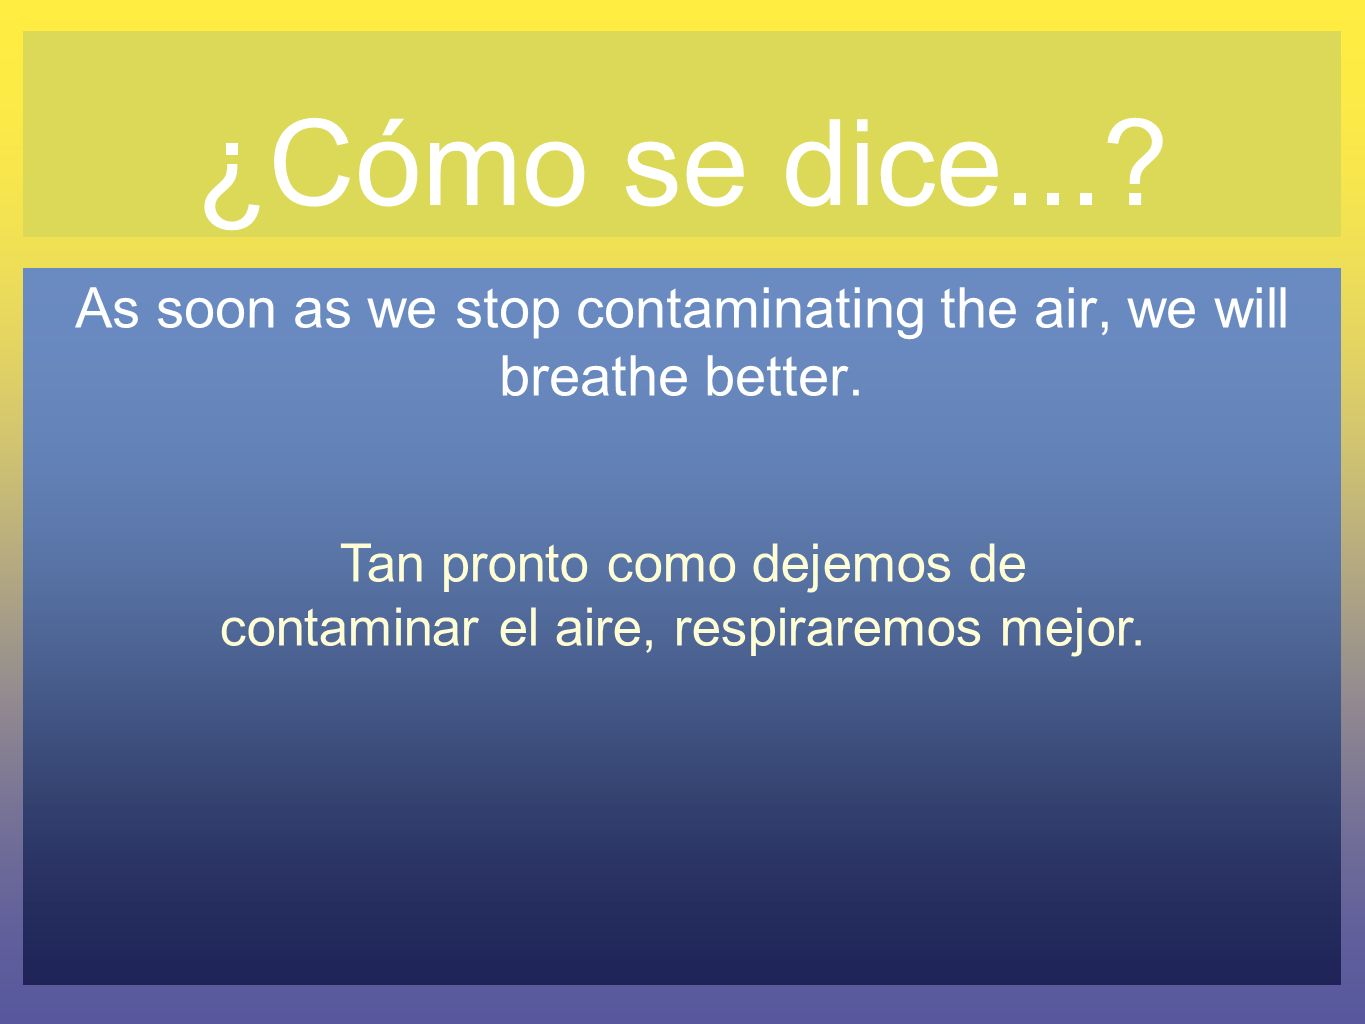 ¿Cómo se dice... As soon as we stop contaminating the air, we will breathe better.